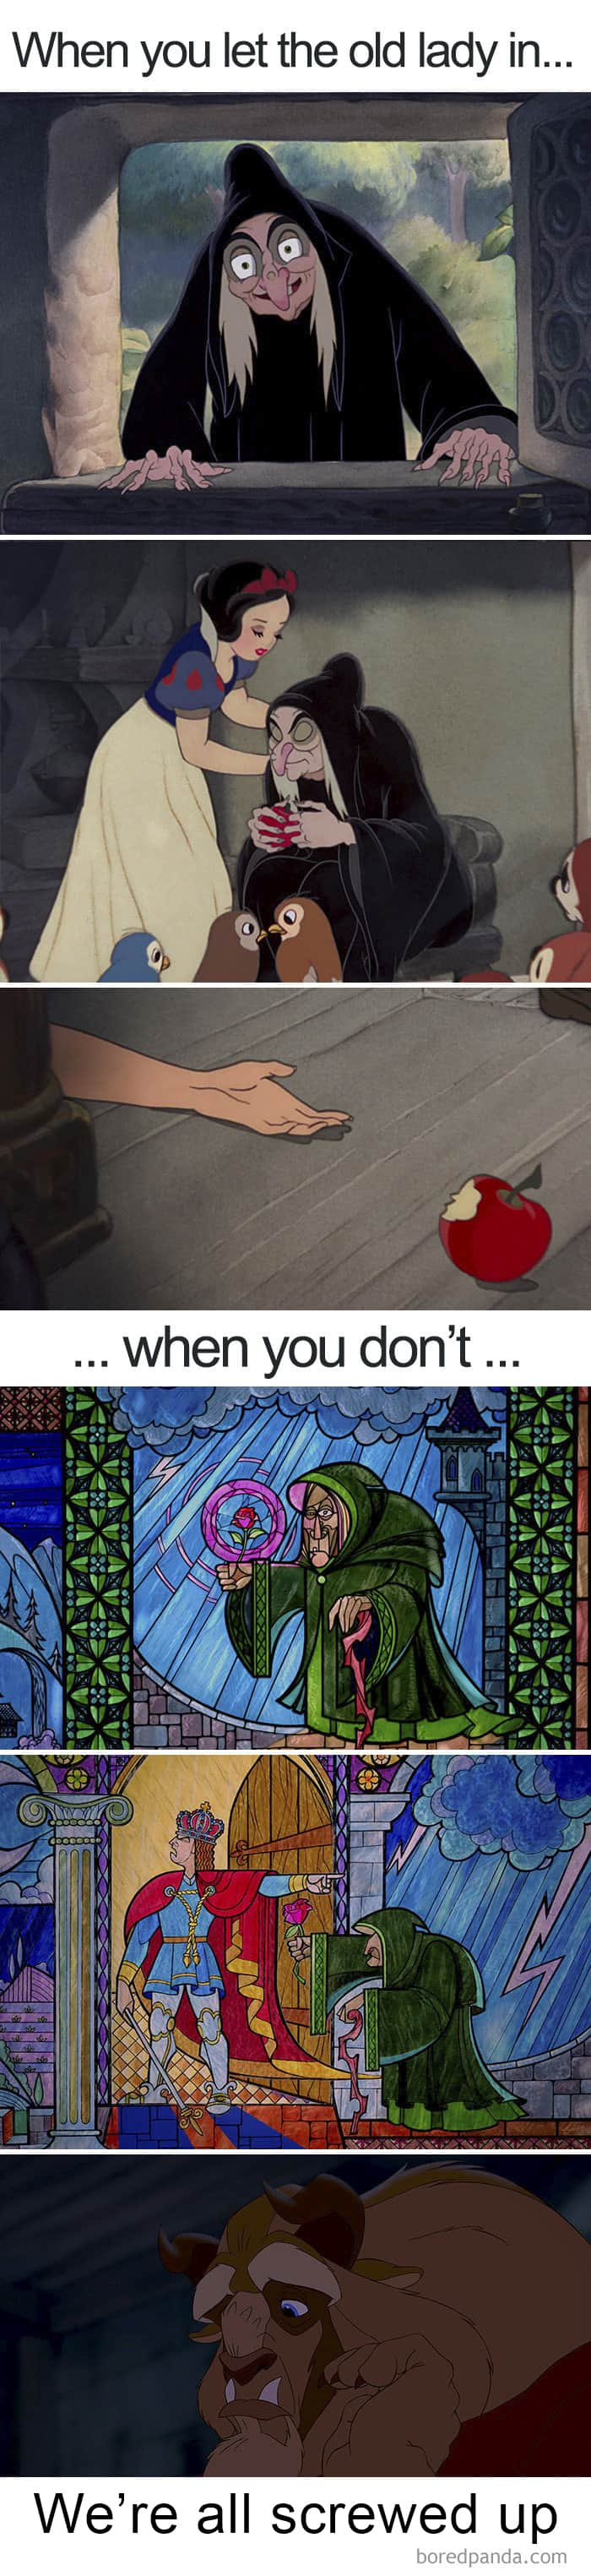 letting-an-old-lady-in-hilarious-disney-jokes